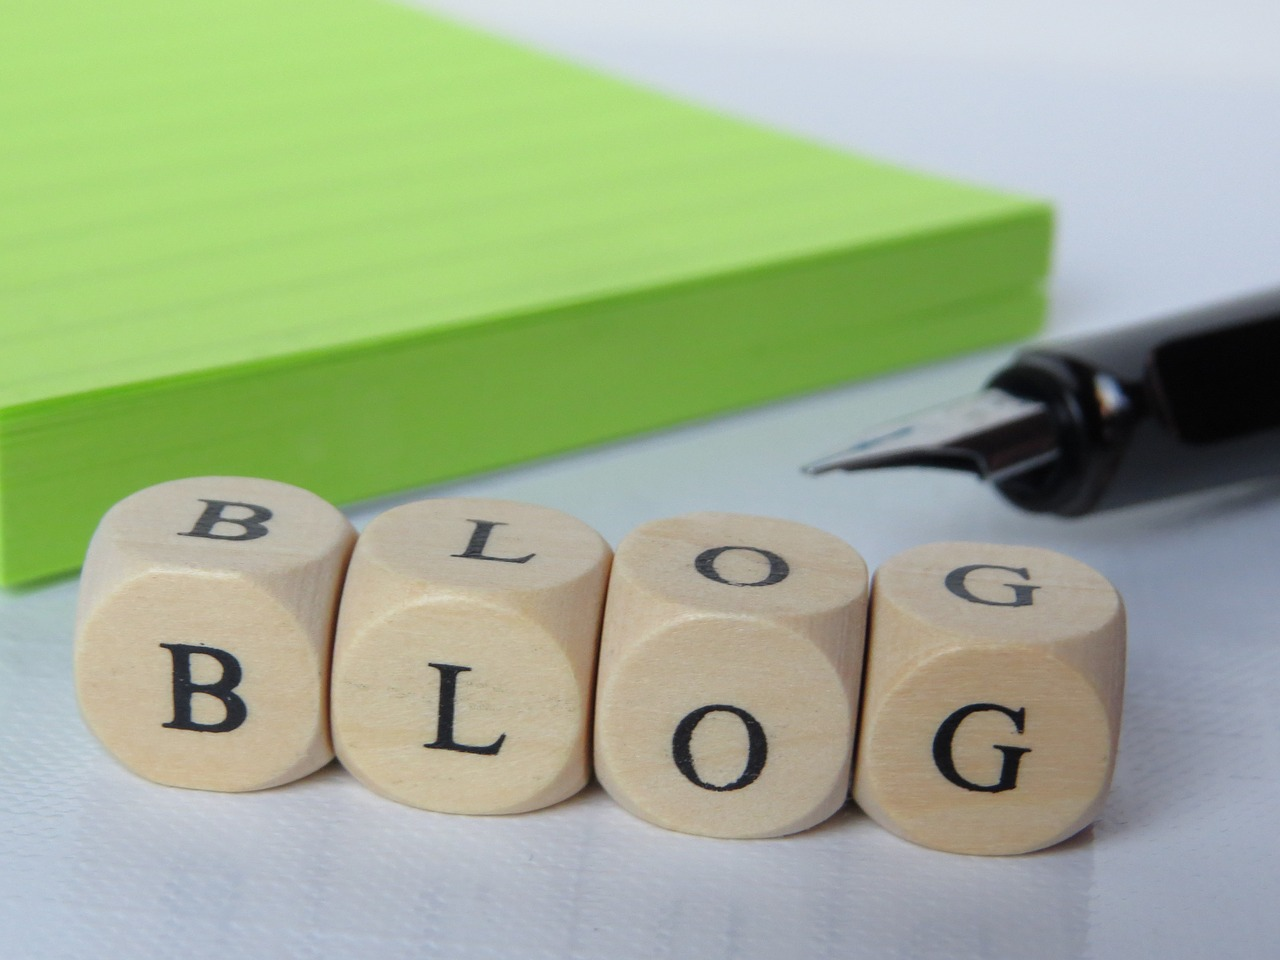 How do I find great topics for my law firm's blog?